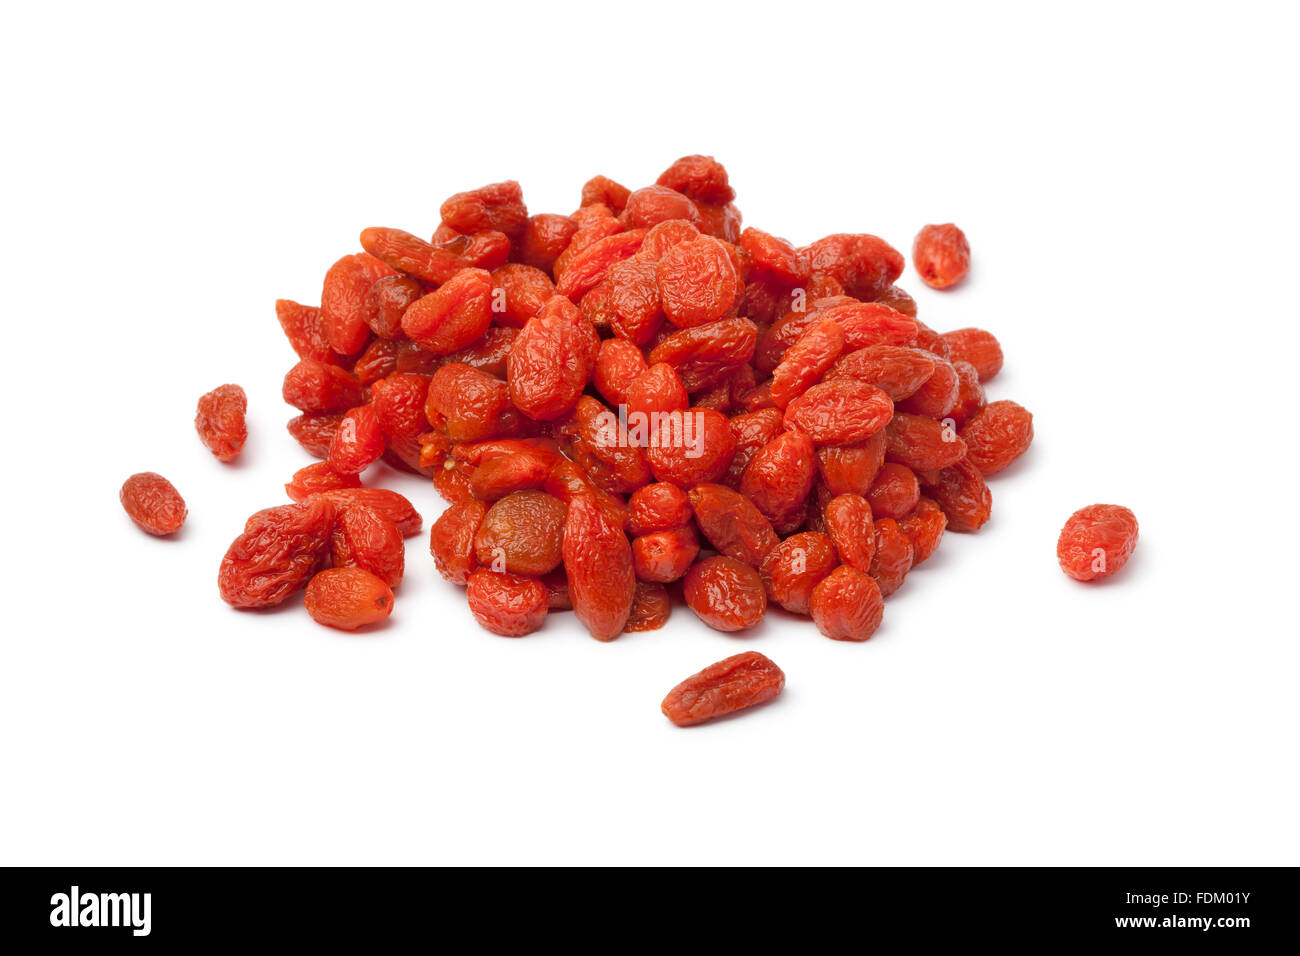 Heap of soaked Goji berries on white background - Stock Image